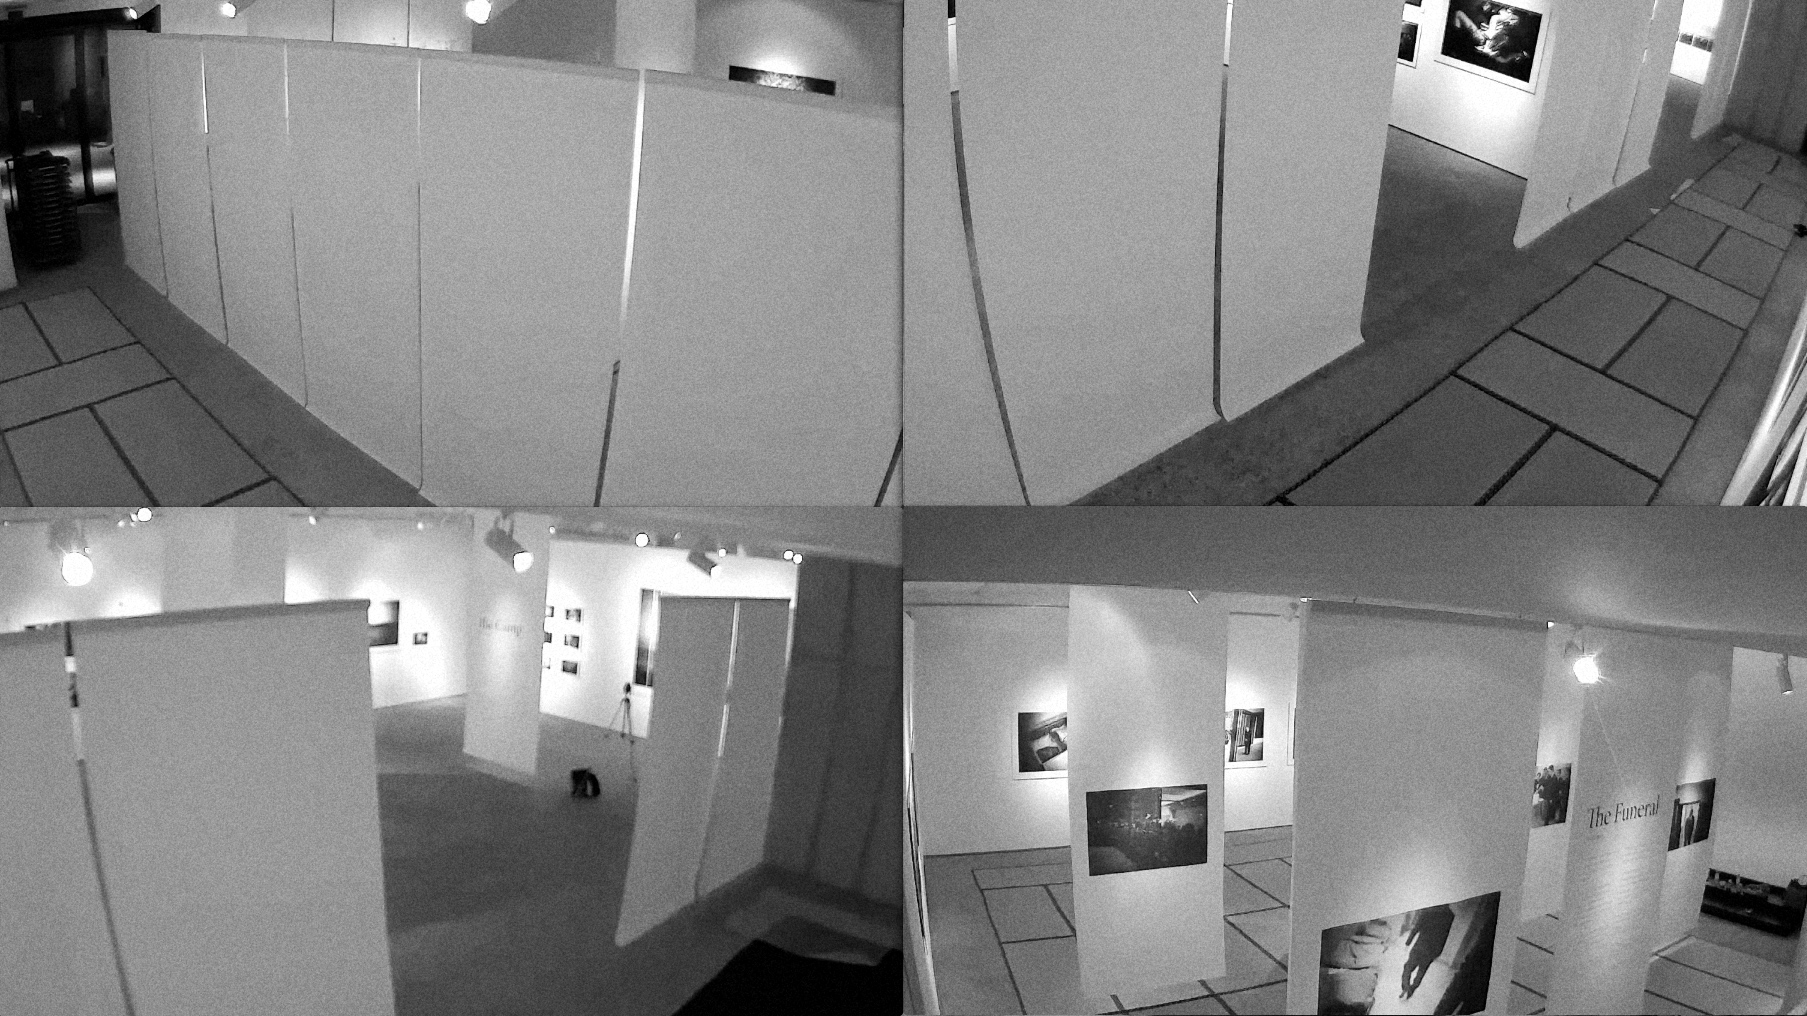 security cam footage of the Yakuza exhibit buildup